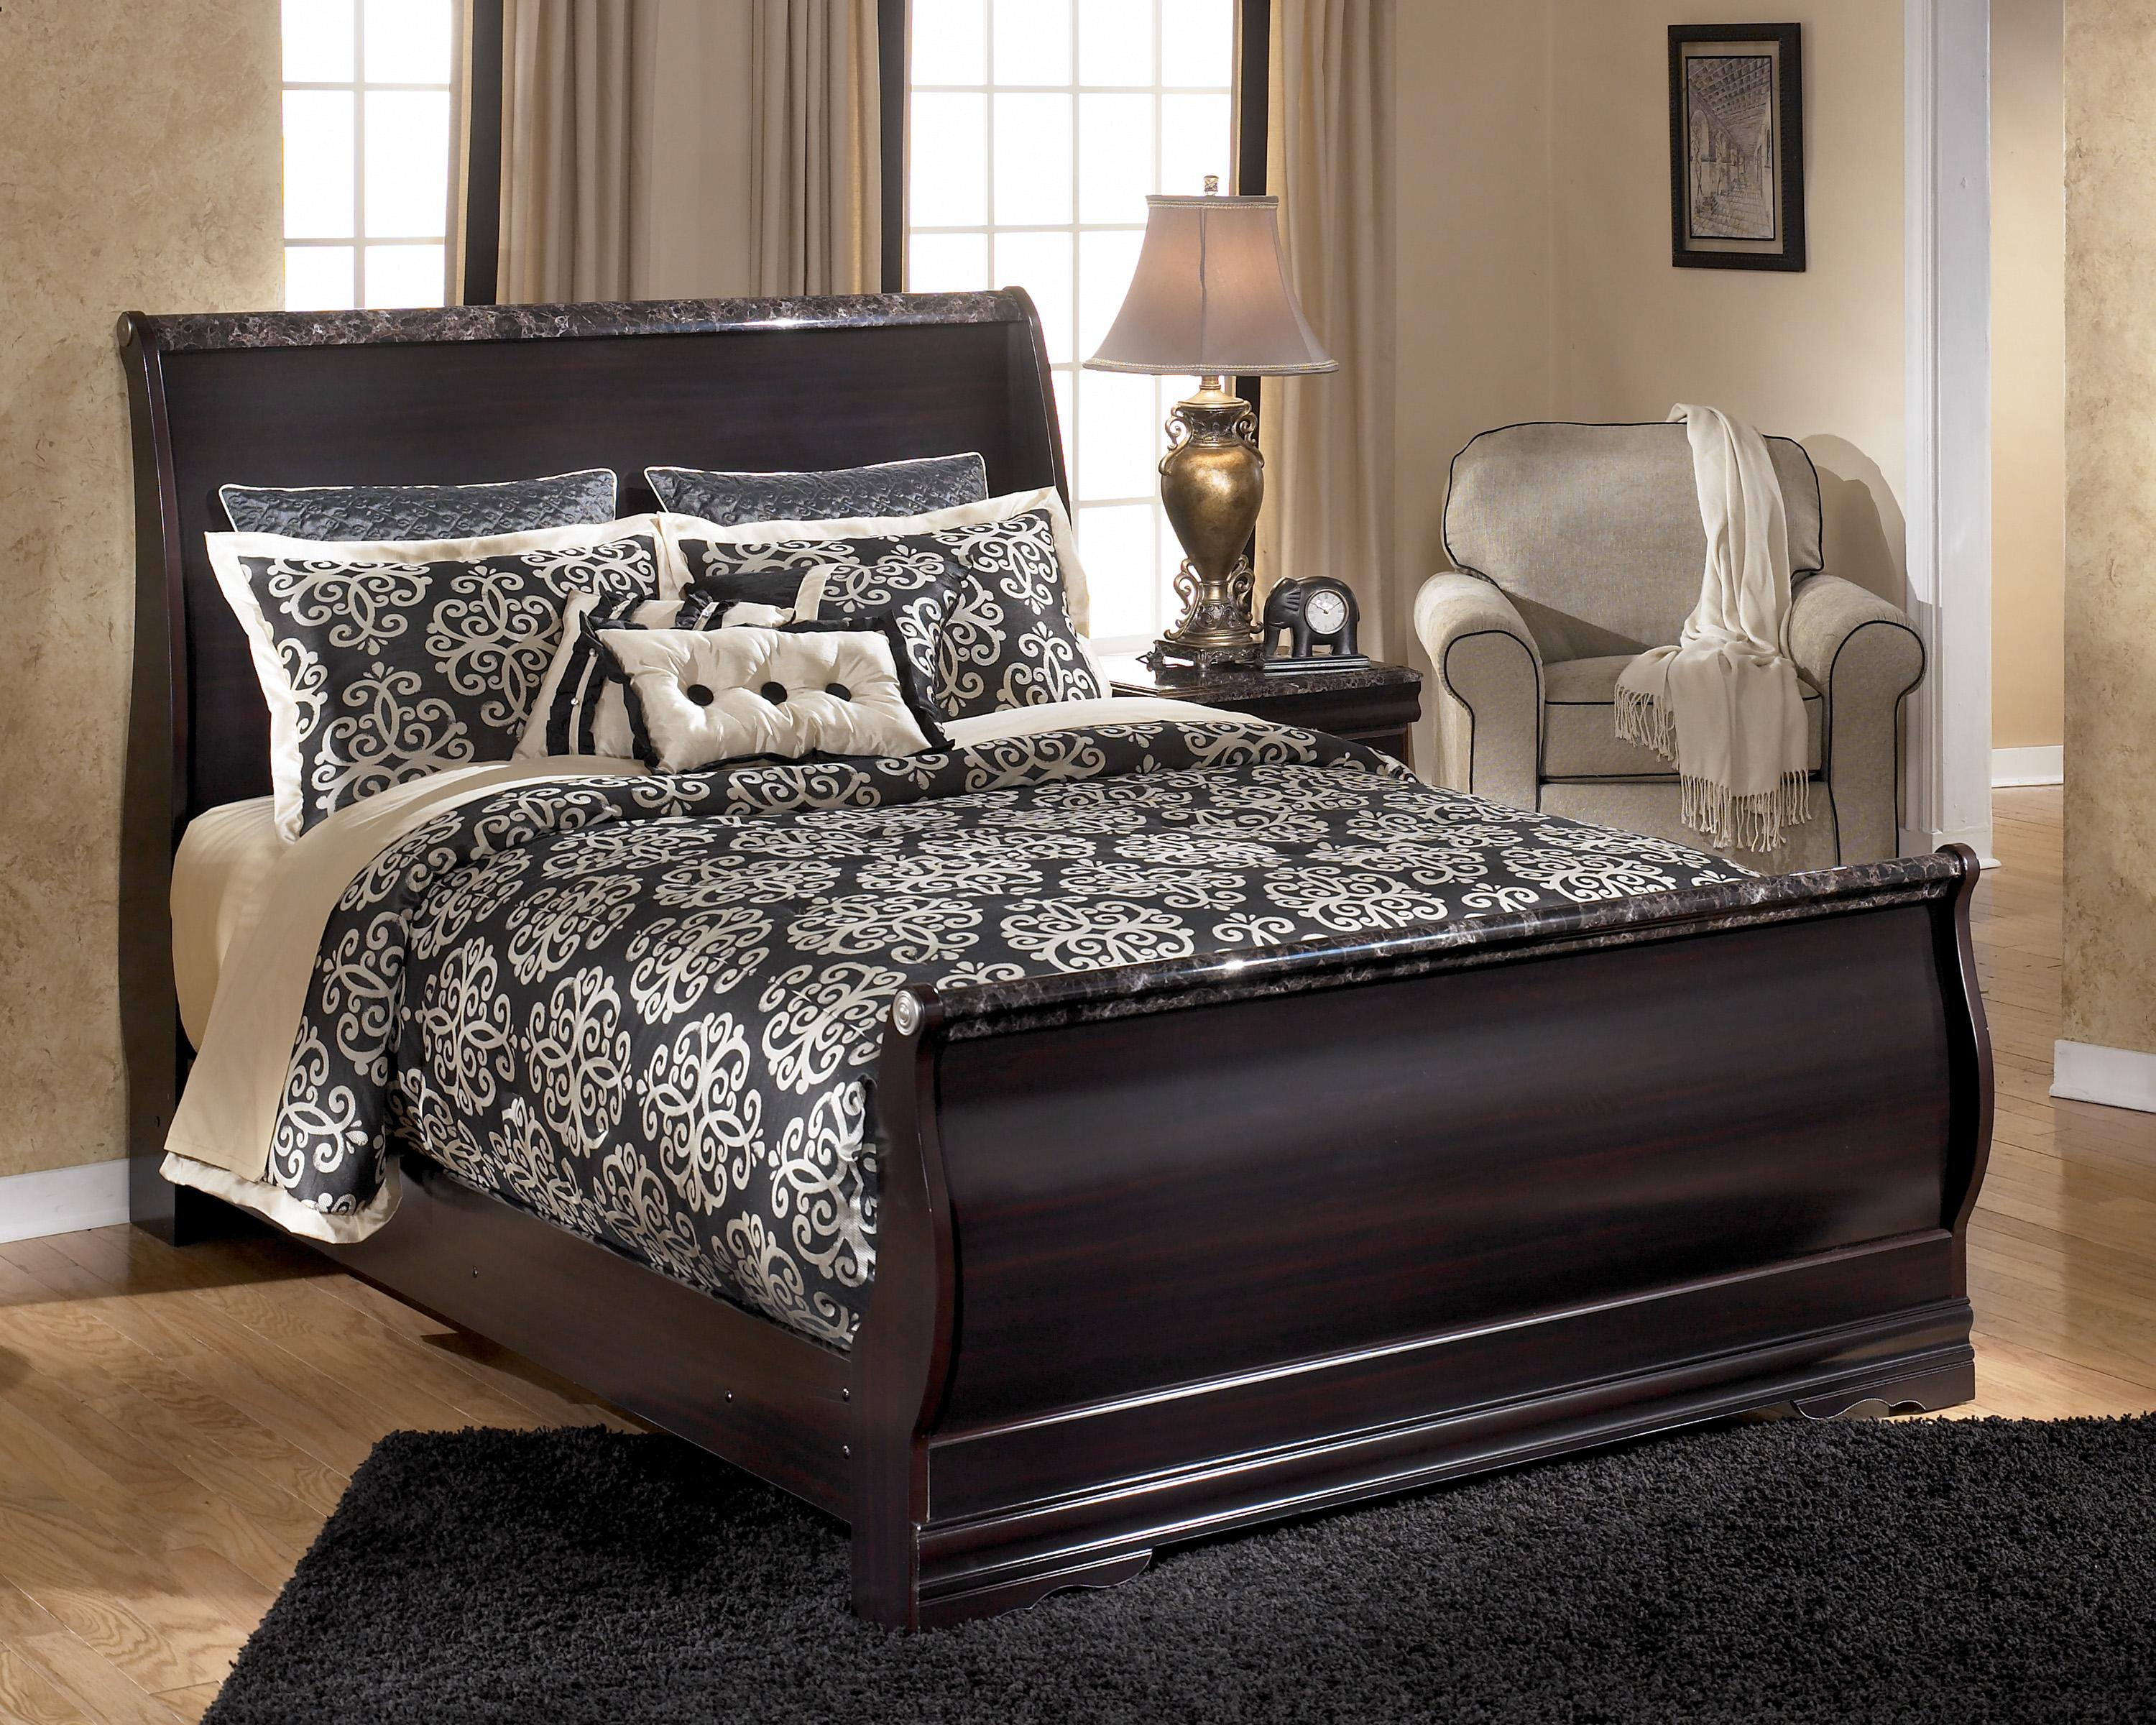 Amazing Sleigh Beds Queen to Bold Contemporary Look Statement